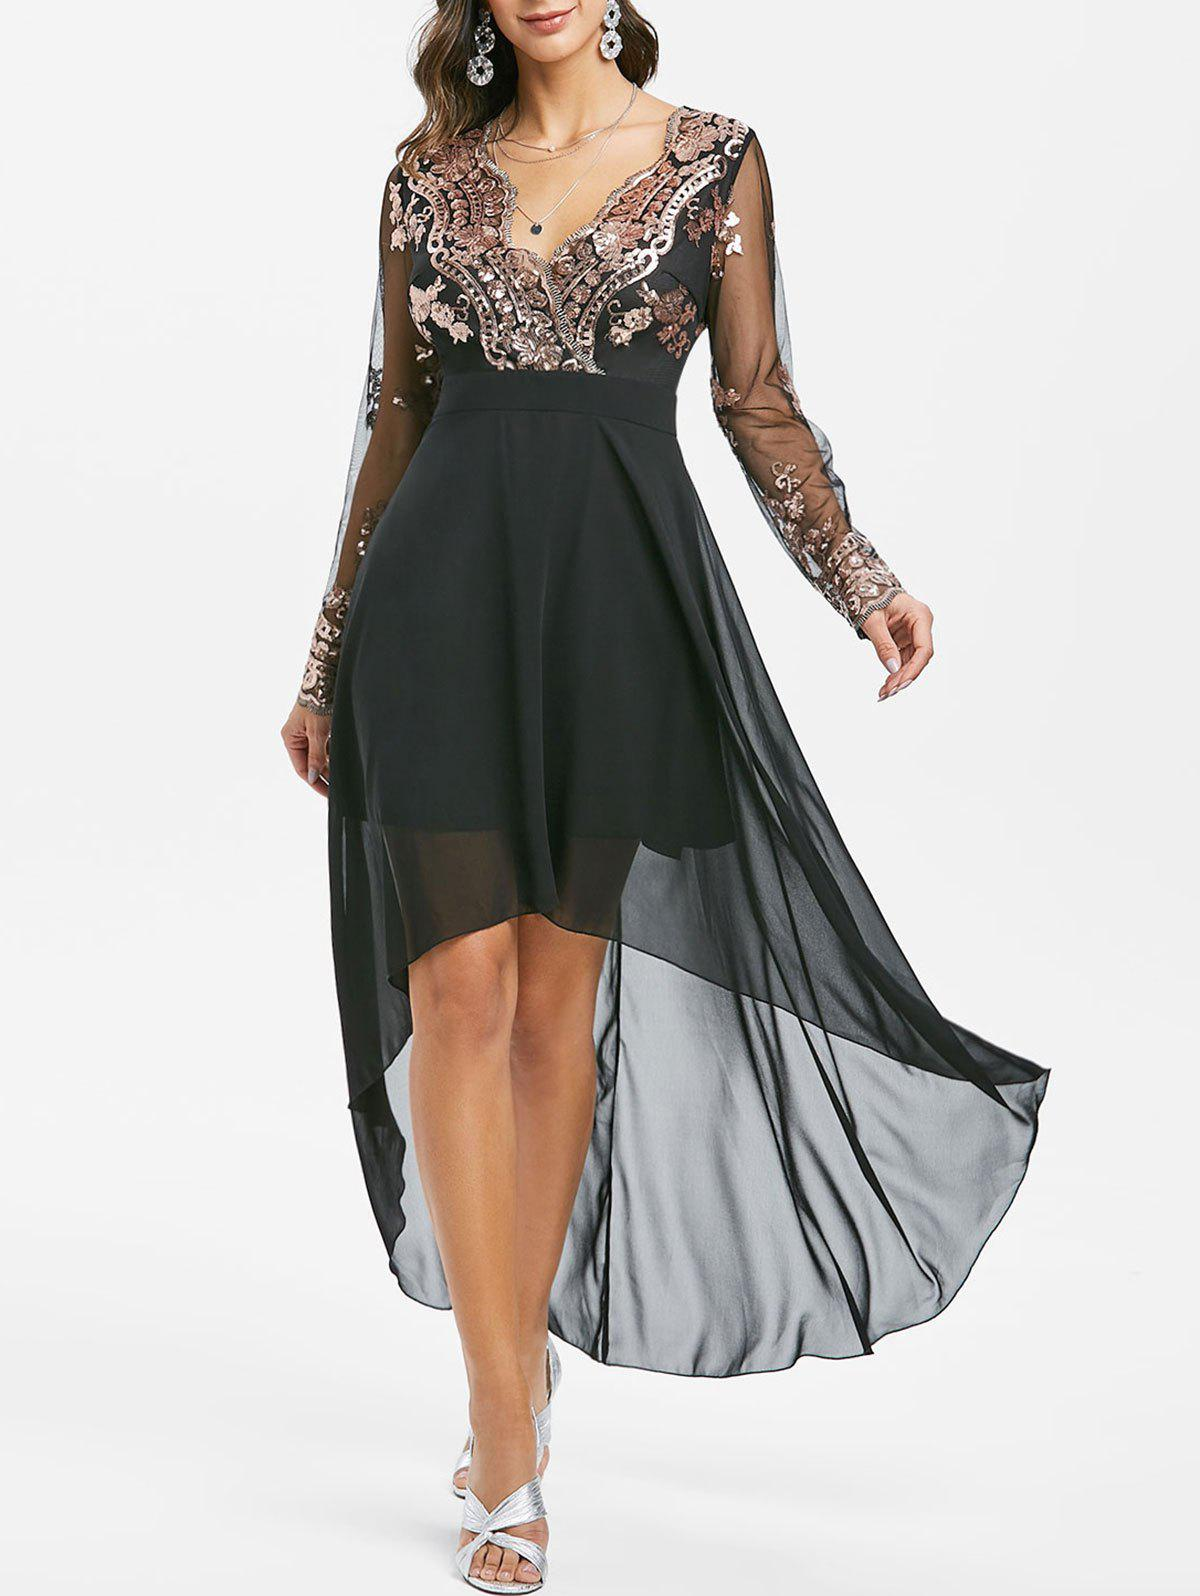 Sequined Mesh Panel High Low Chiffon Prom Dress - BLACK 2XL